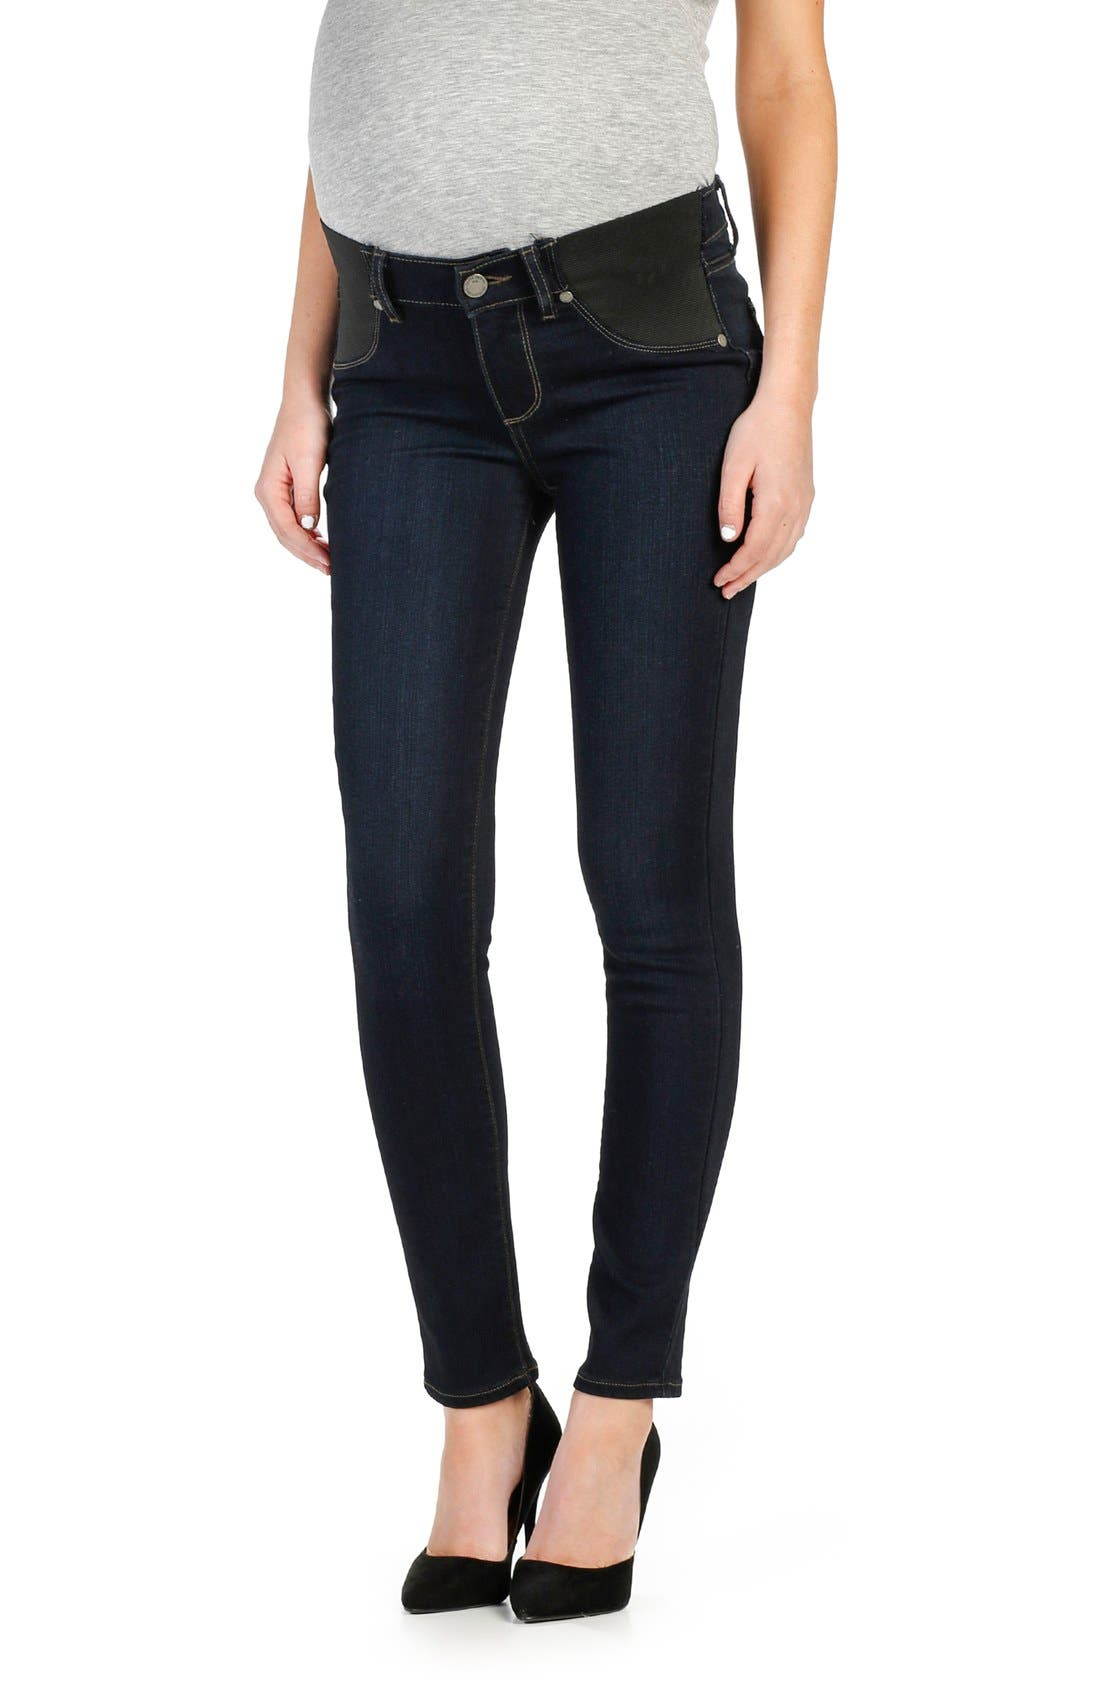 Alternate Image 1 Selected - PAIGE Transcend - Verdugo Ankle Skinny Maternity Jeans (Mona)